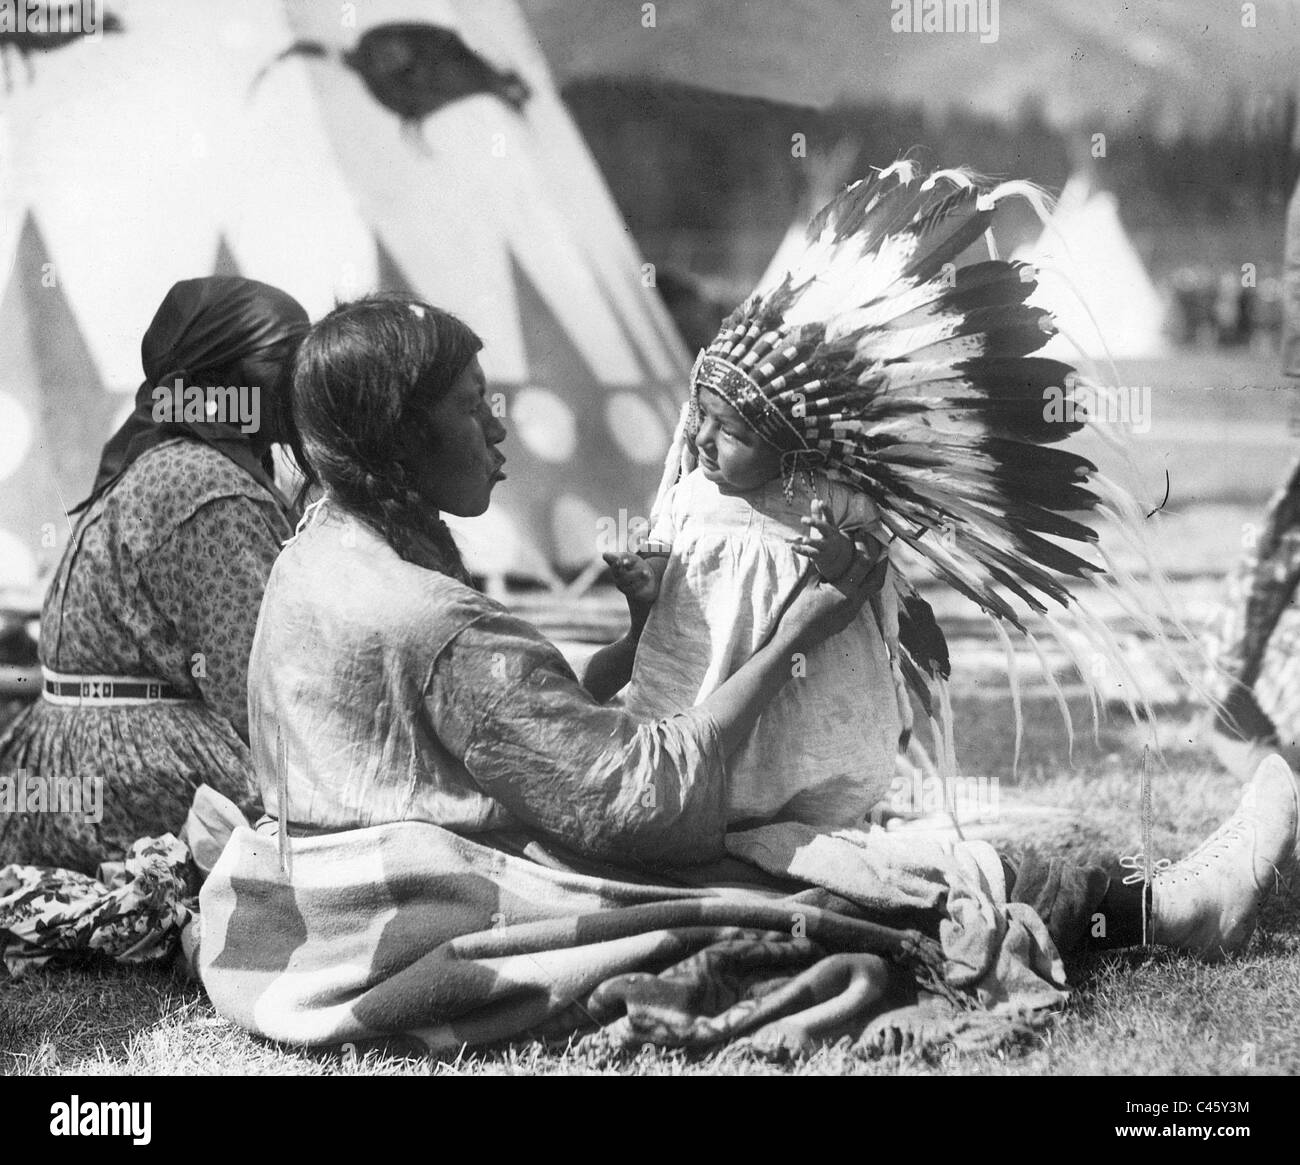 Chief 'Cry like Elk' with his mother, 1927 - Stock Image